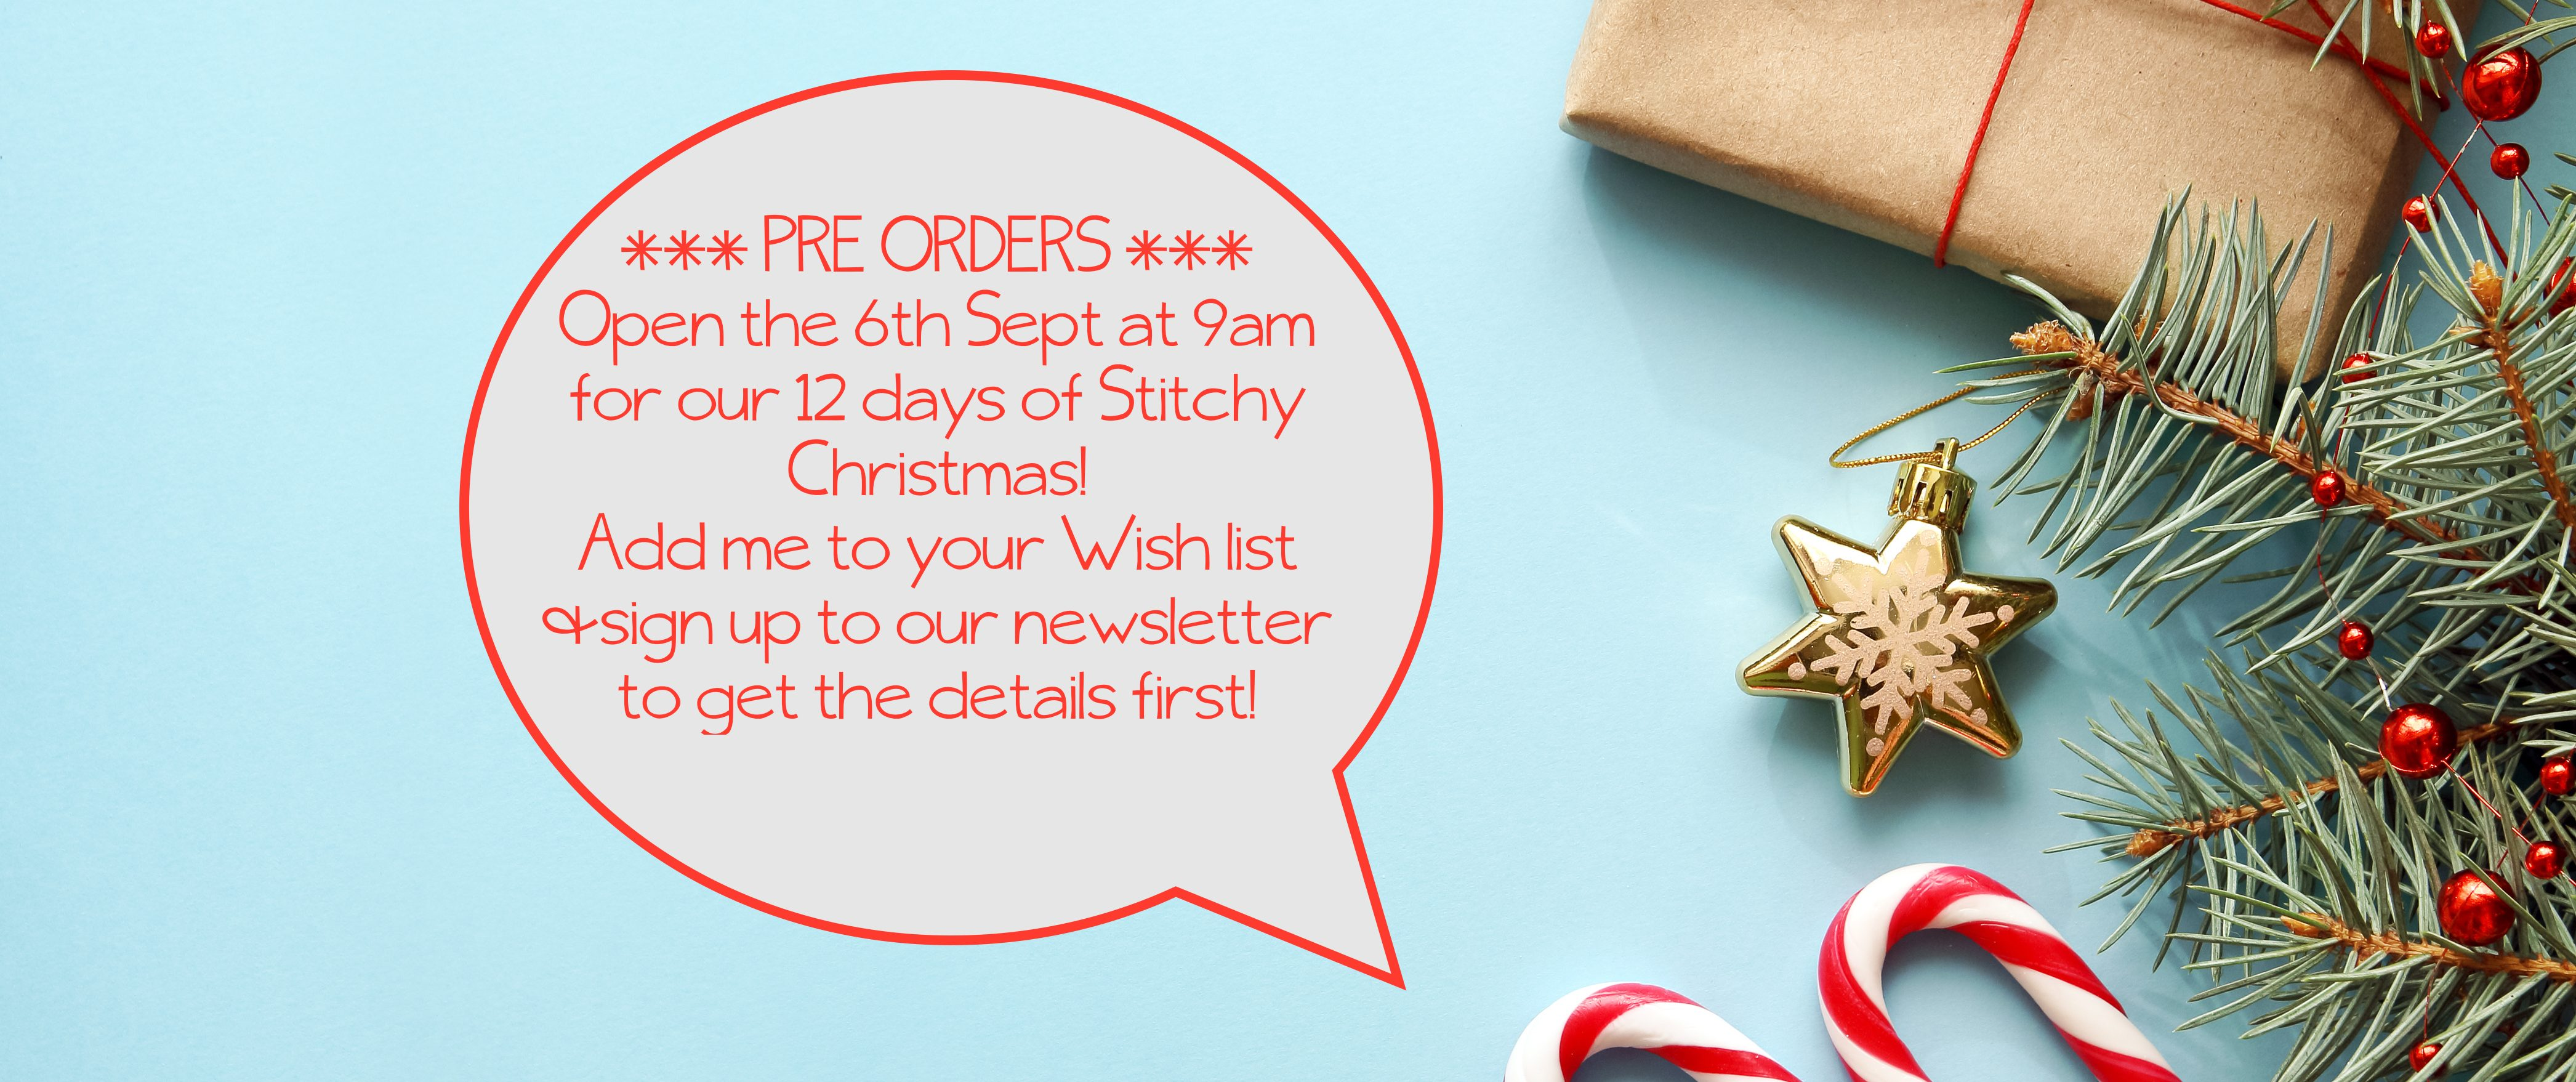 Open For Christmas Orders.12 Days Of Stitchy Christmas